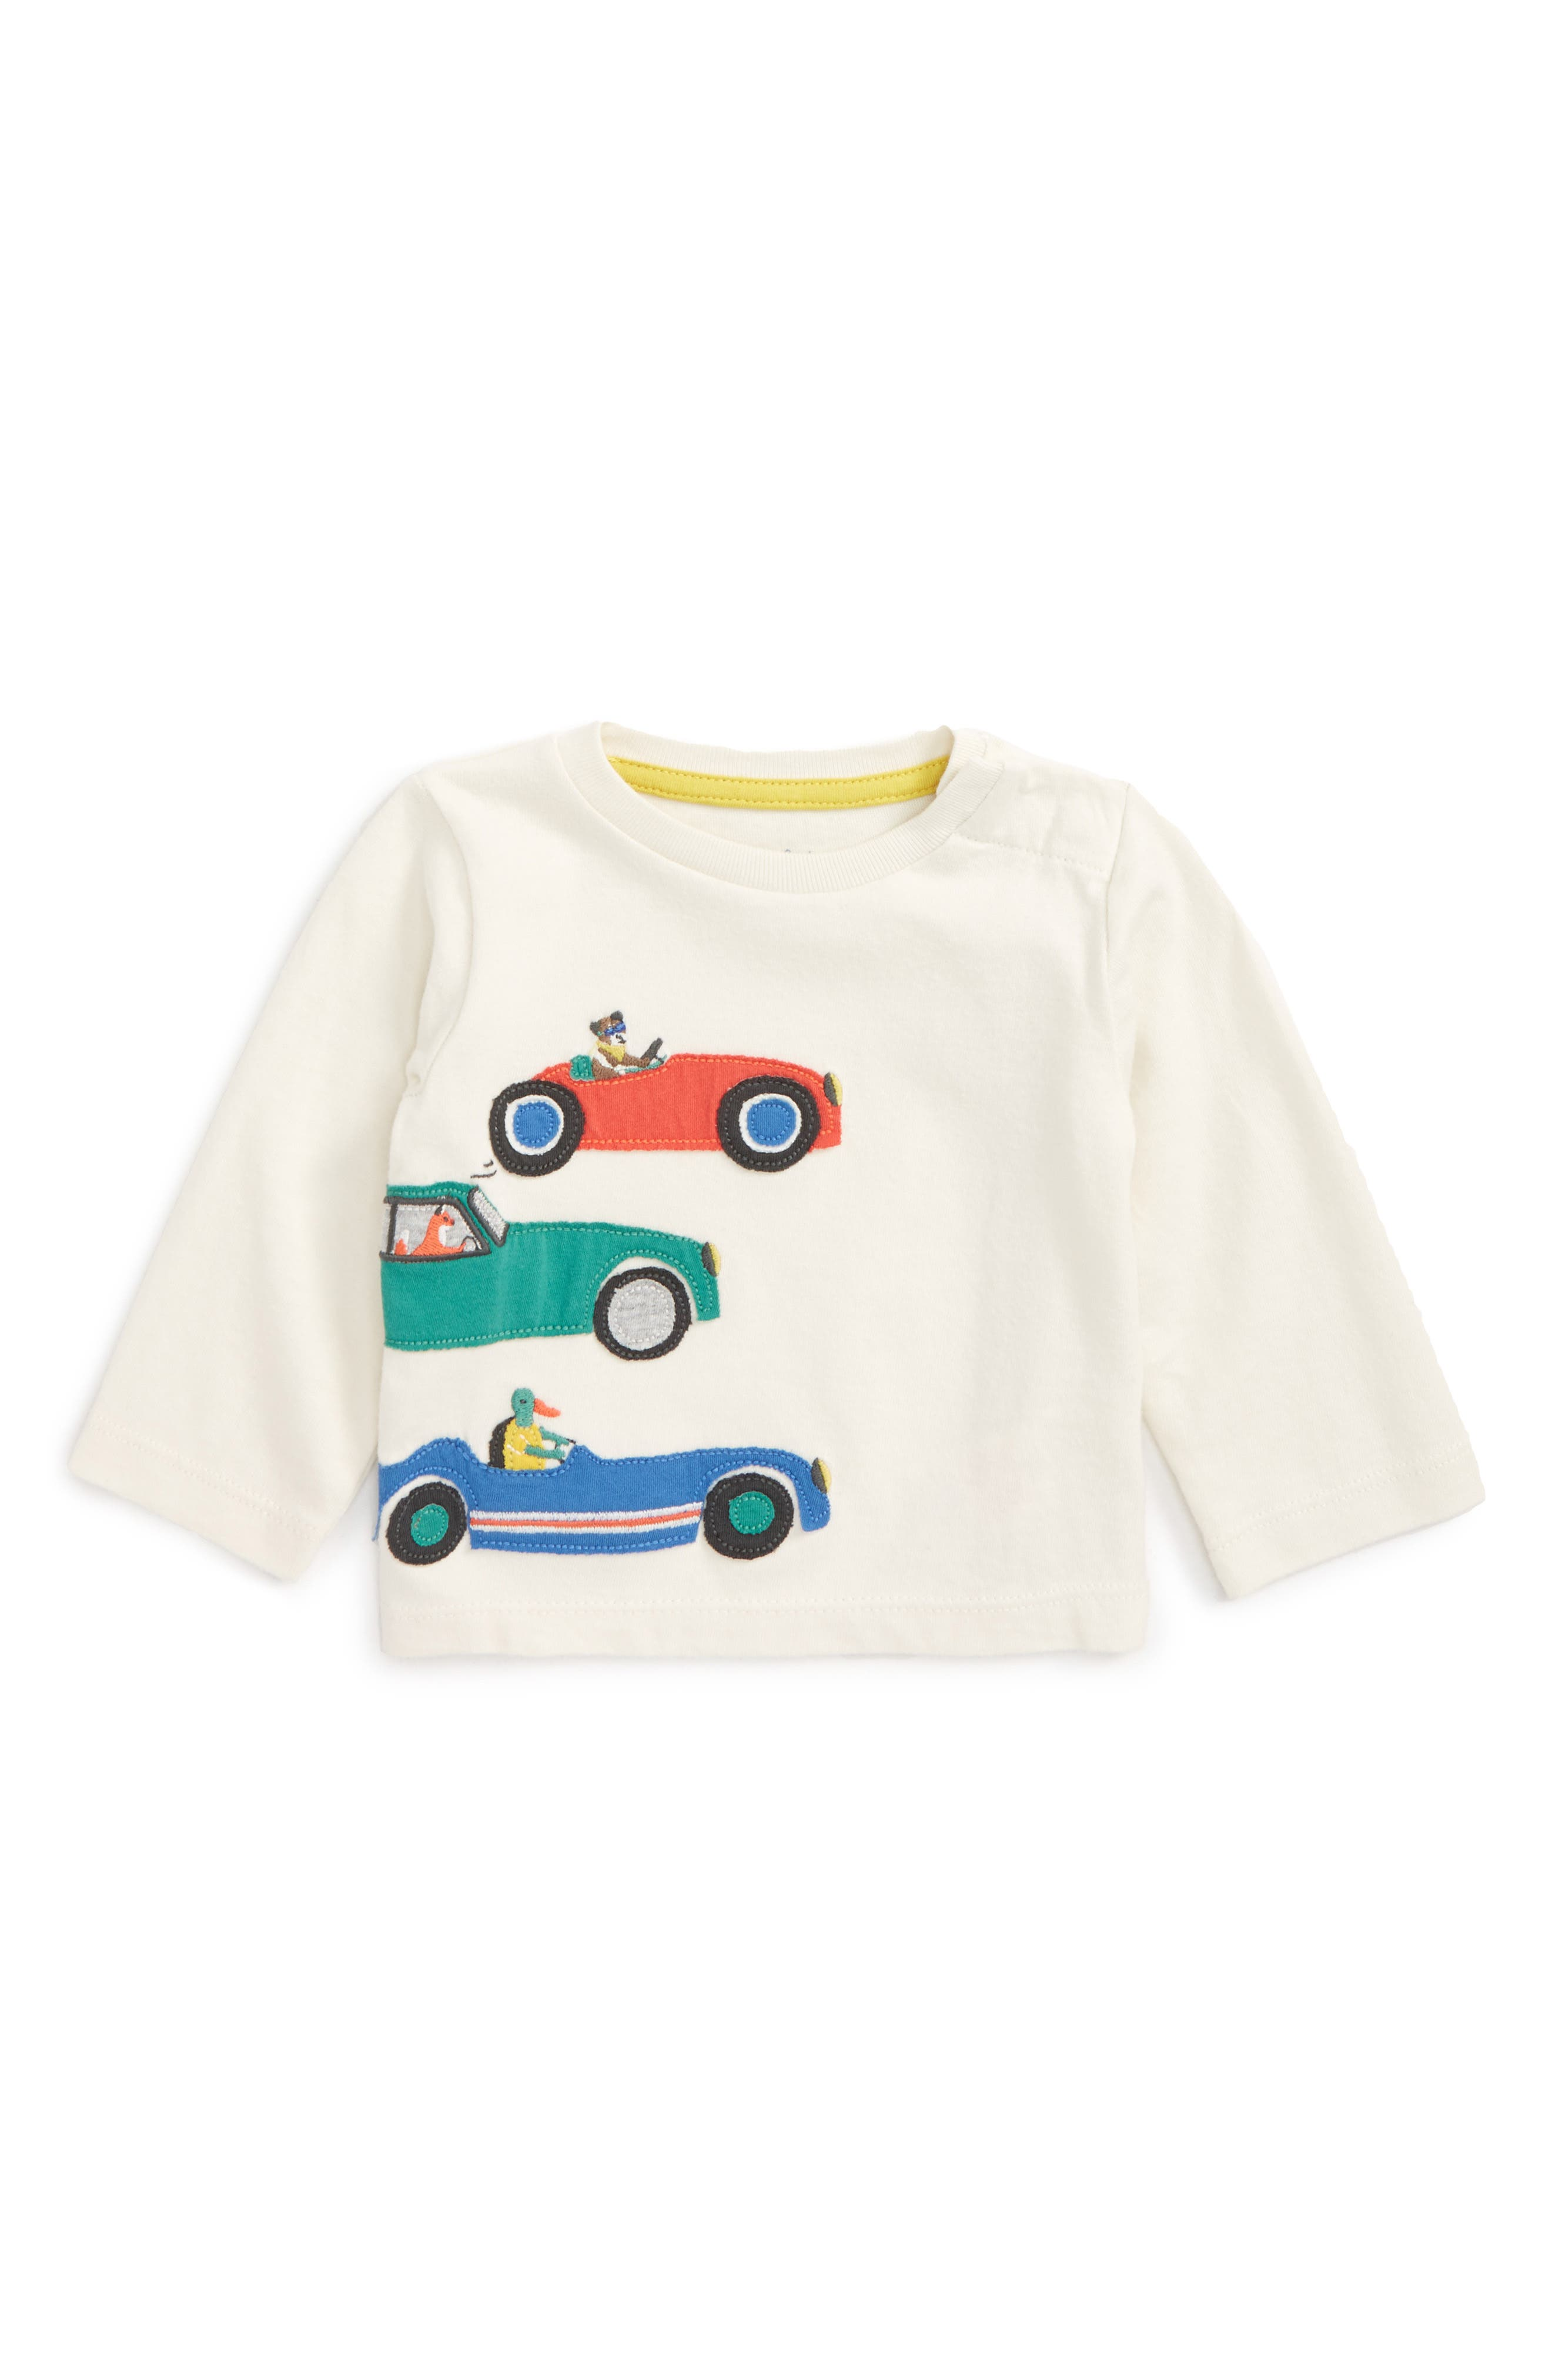 Vehicle Appliqué T-Shirt,                         Main,                         color,